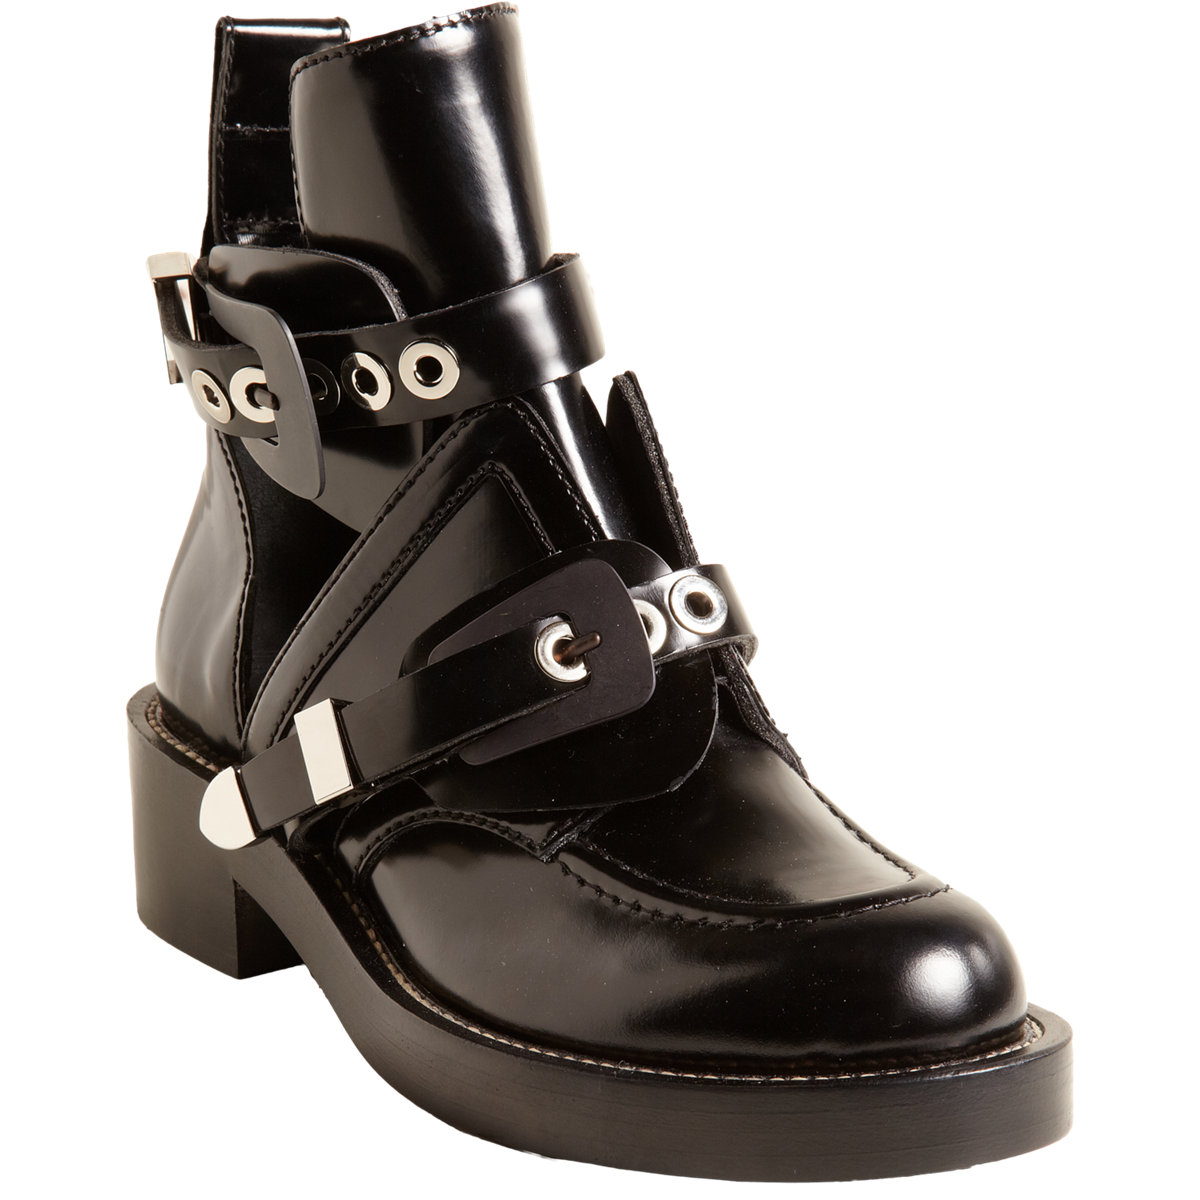 Balenciaga Buckle Strap Ankle Boot at Barneys.com